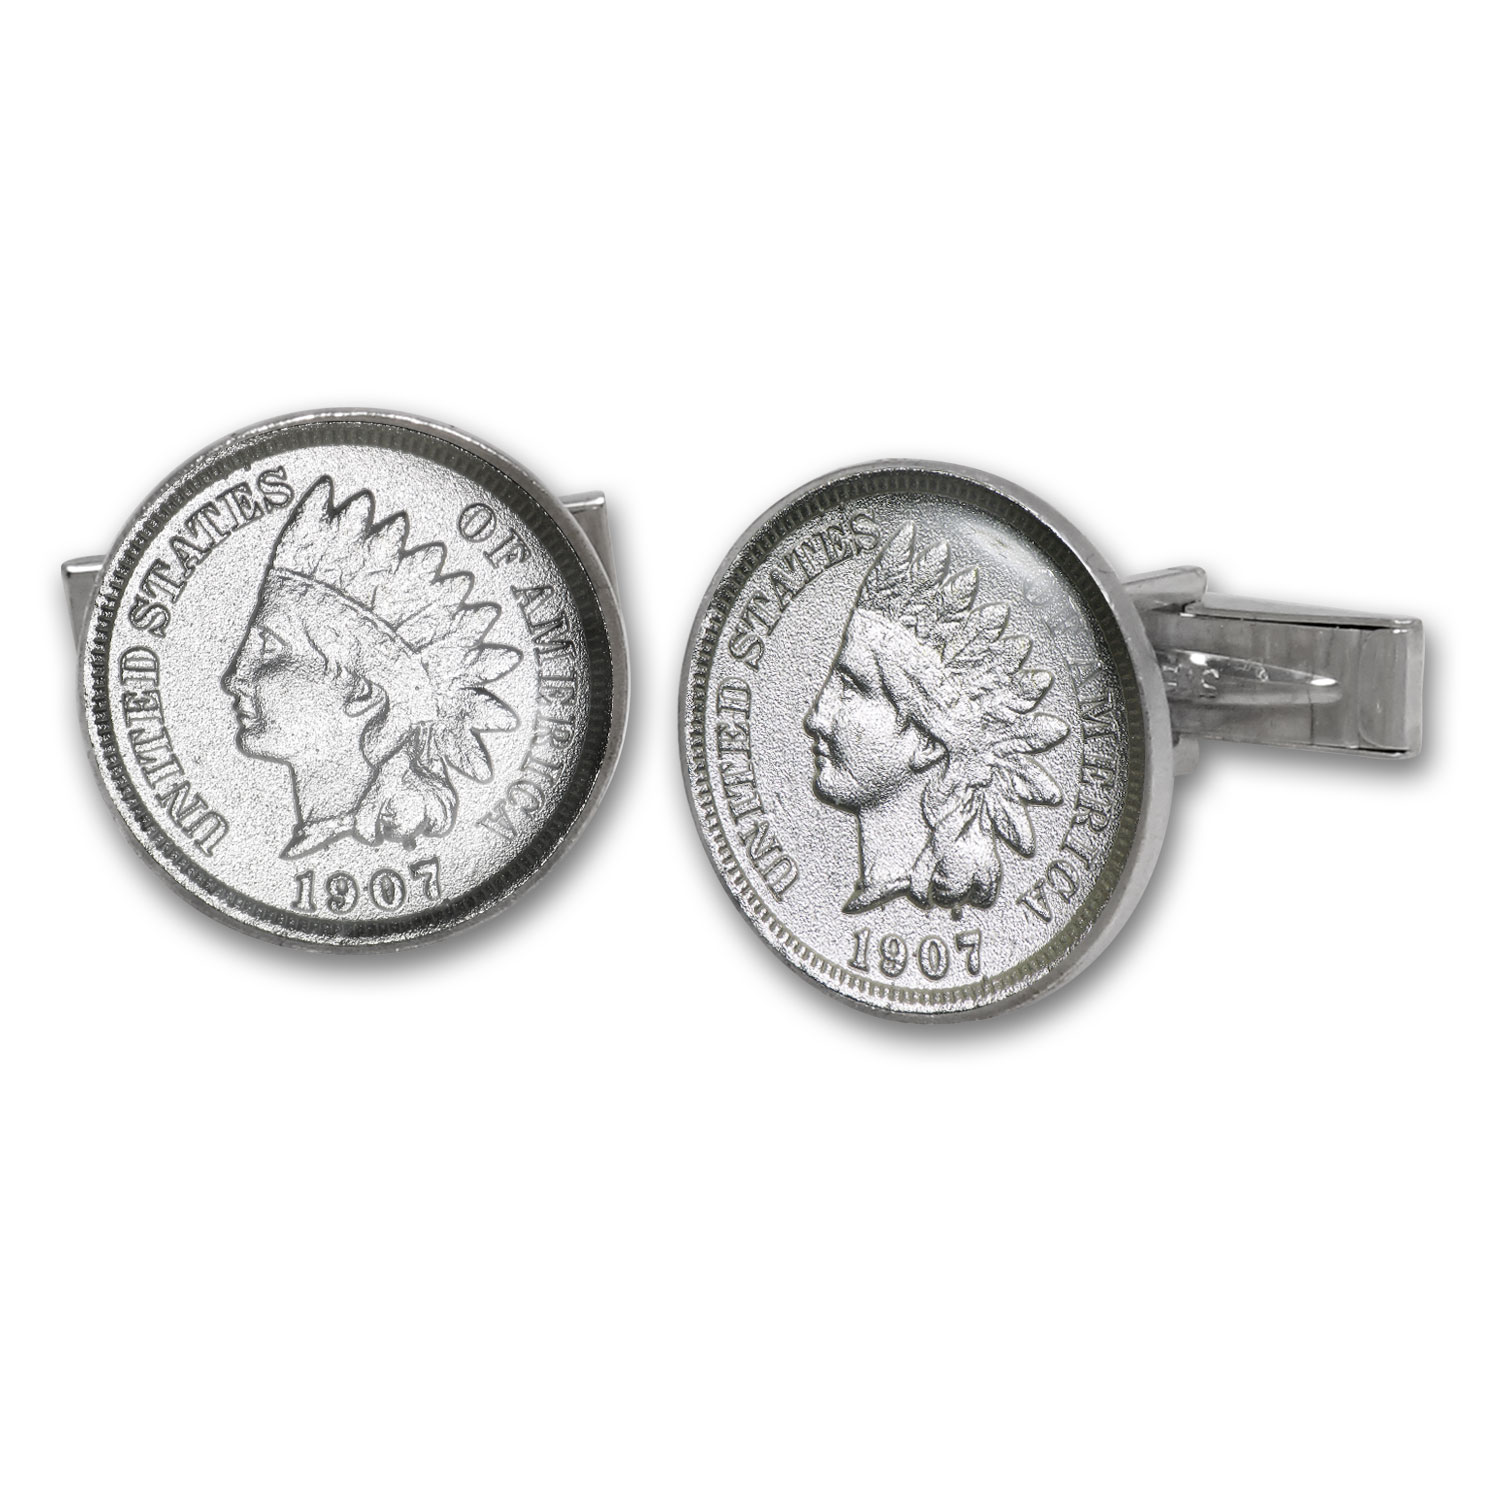 U.S. Indian Princess Penny Sterling Silver Cuff Links